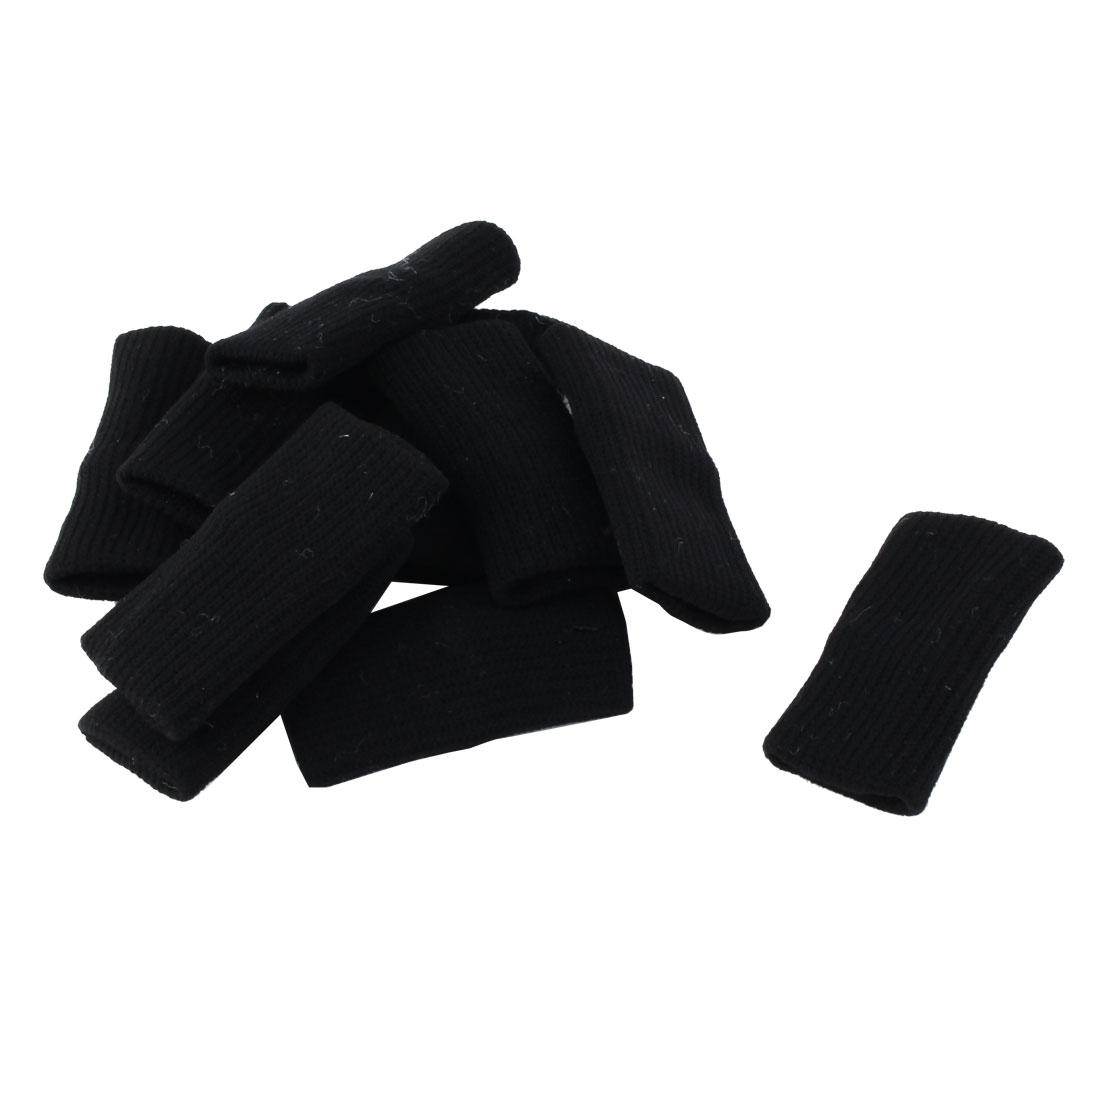 10 Pcs Black Outdoor Sports Volleyball Basketball Elastic Nylon Finger Sleeve Cover